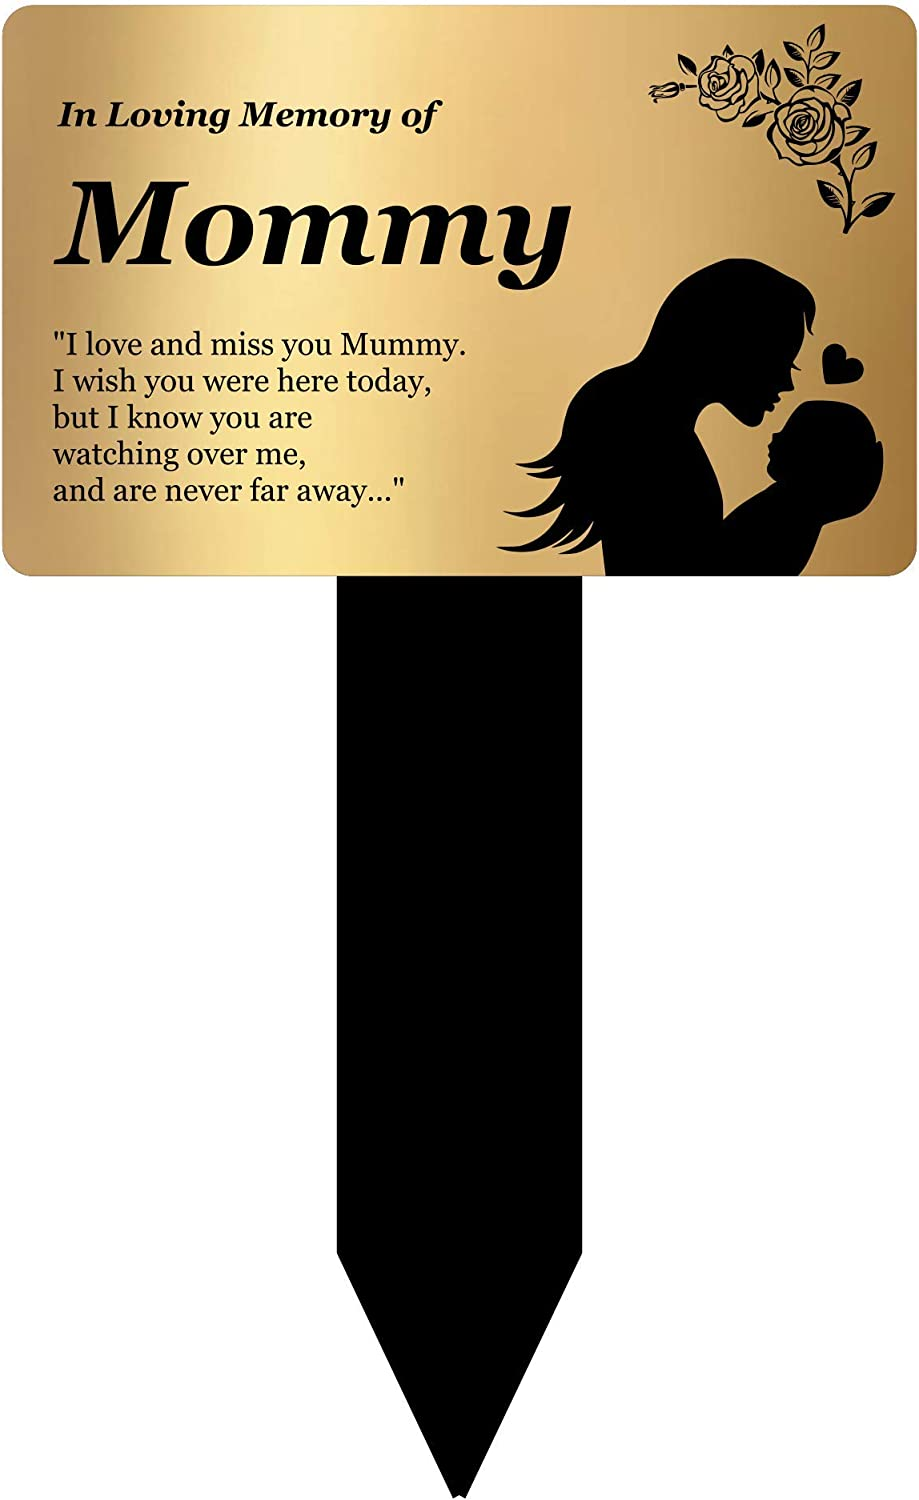 OriginDesigned in Loving Memory of Mommy - Engraved Memorial Stake with Poem and Illustration (Gold/Silver/Copper or Black & White Plaque) (Gold)